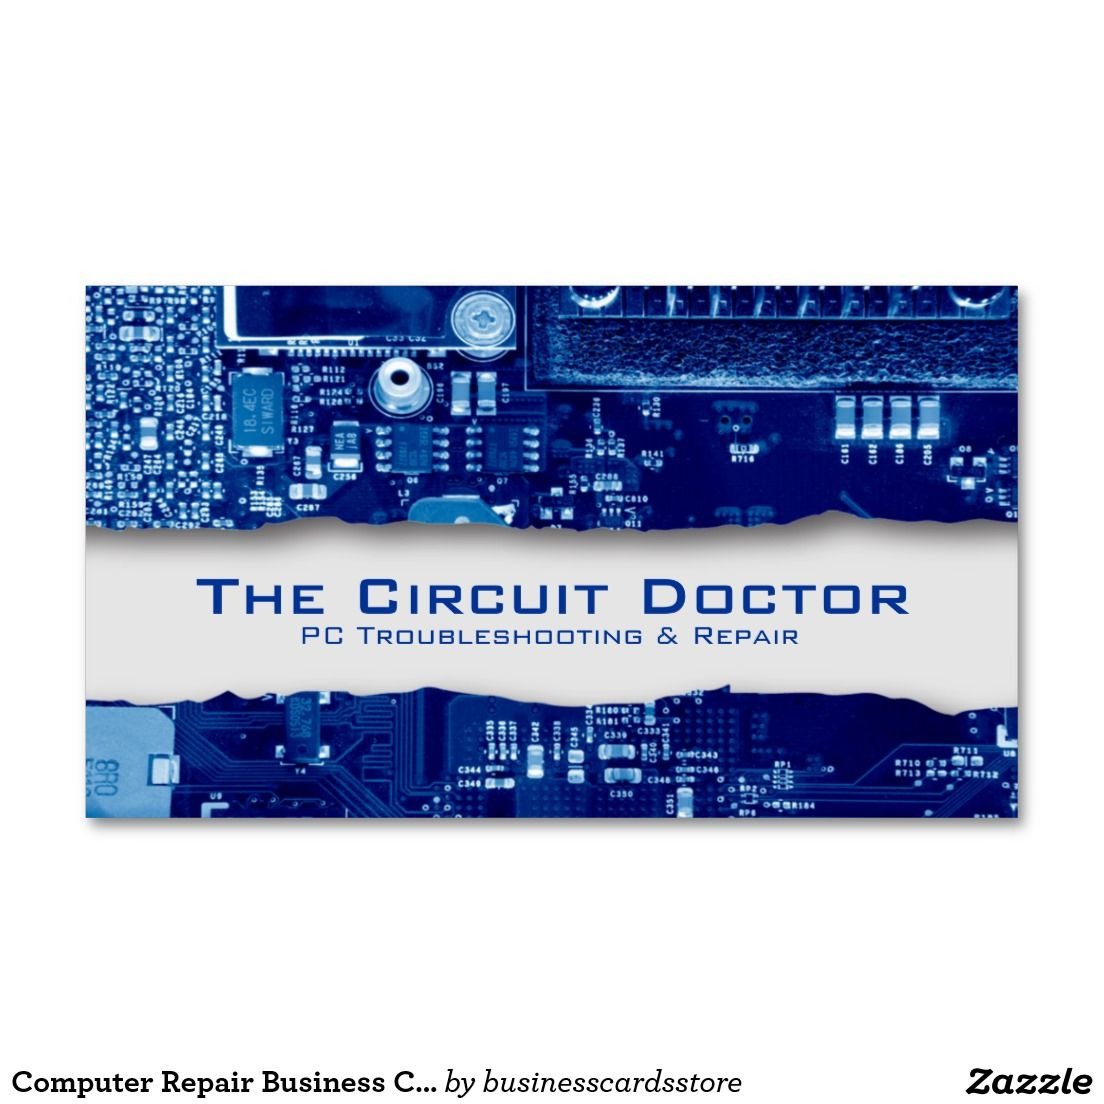 Computer Repair Business Card Electronic Circuits | Drawing and ...